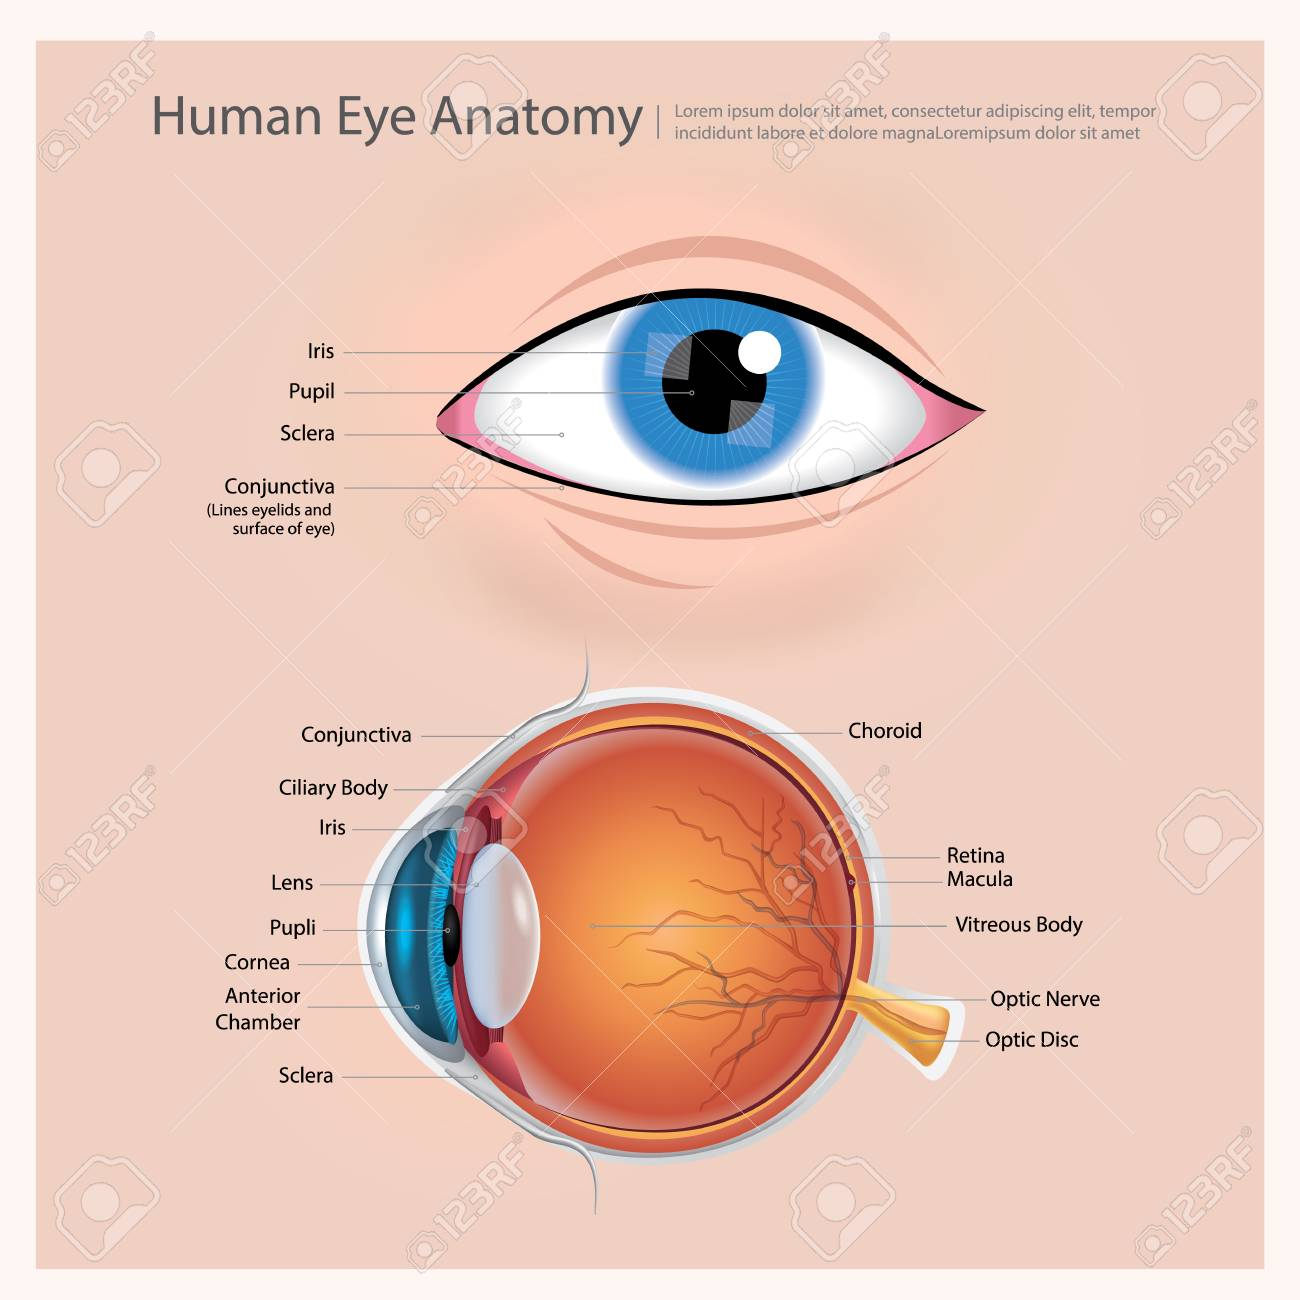 Human Eye Anatomy Vector Illustration Royalty Free Cliparts, Vectors ...